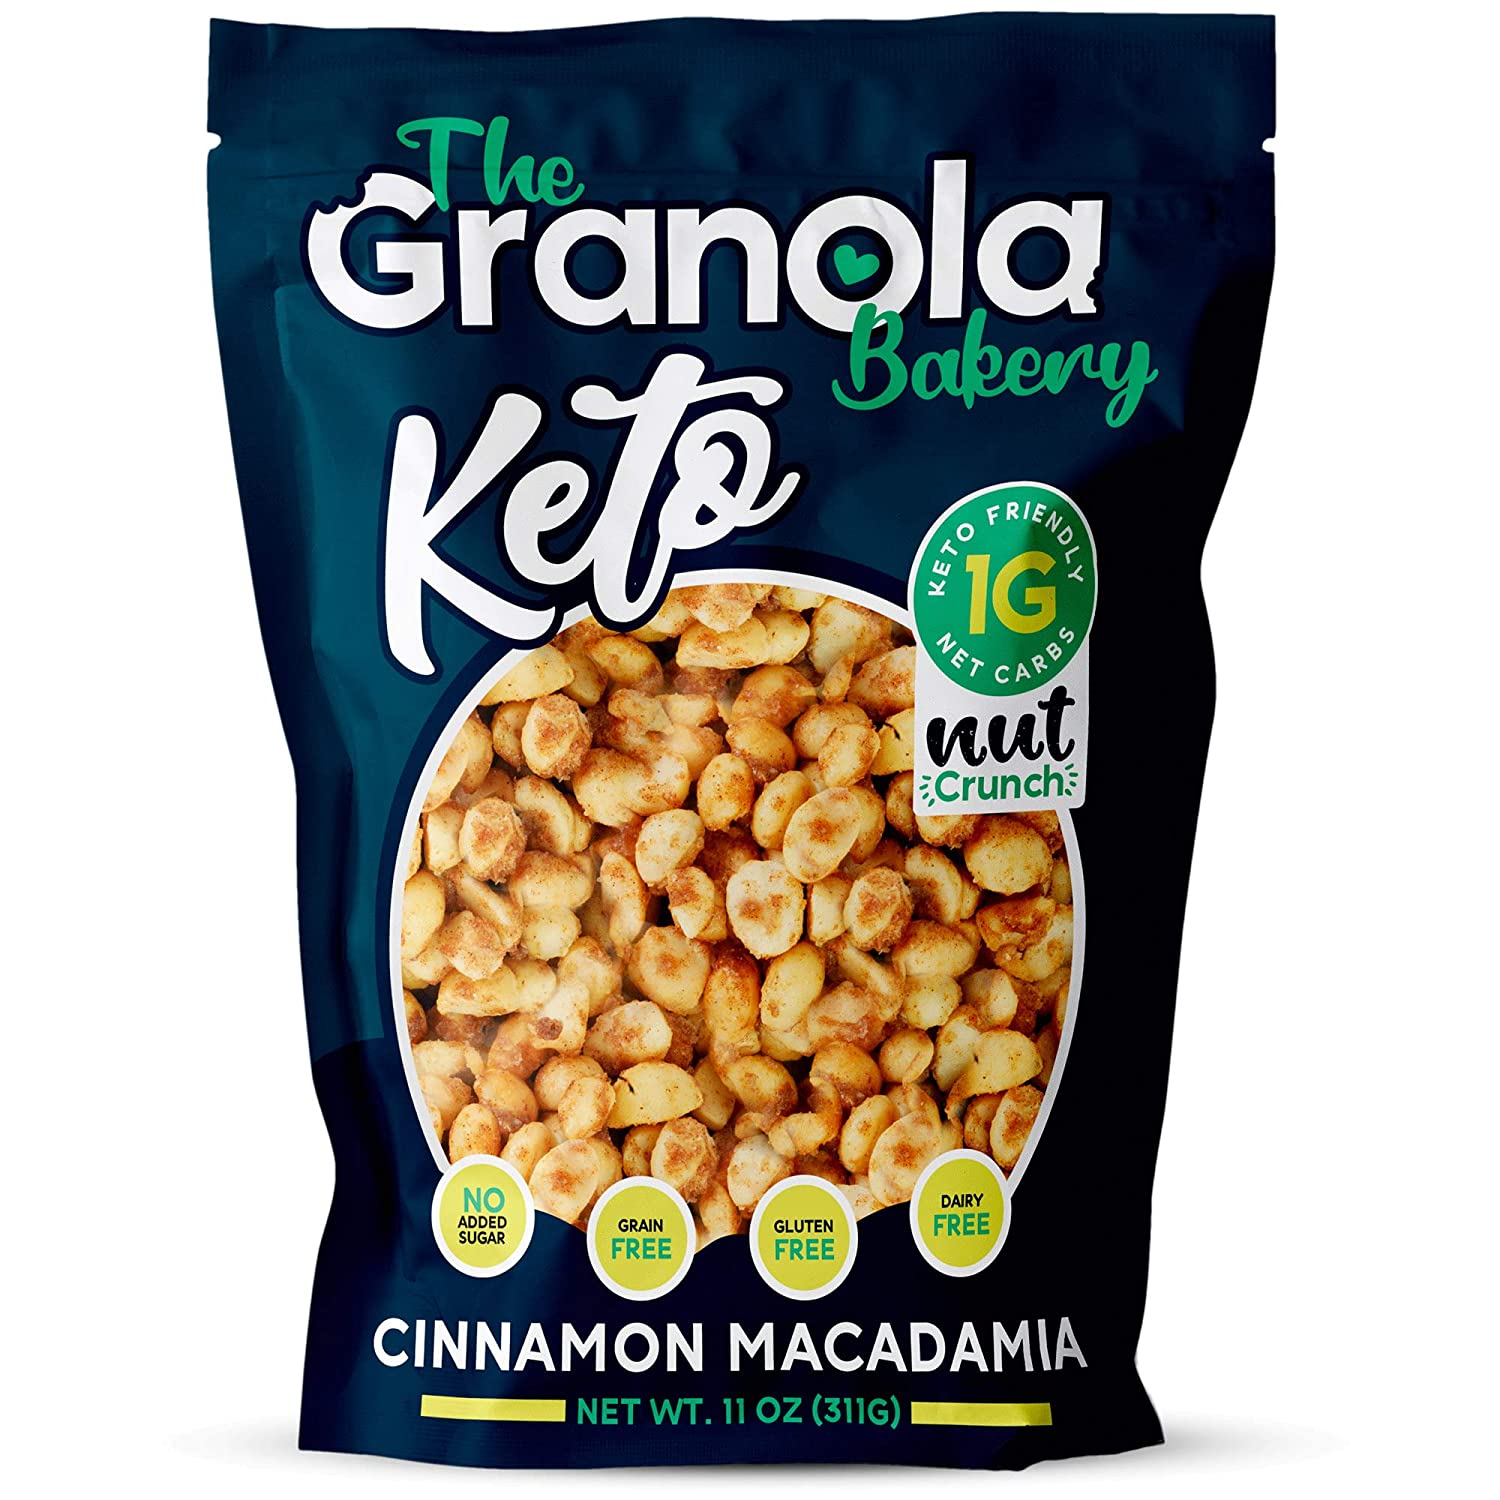 The Granola Bakery Keto Candied Macadamia | Low Carb Keto Nut Snack | 2g Net Carb, Low Sugar | Small Batch, Hand Crafted | Cinnamon, 9.5 Ounces